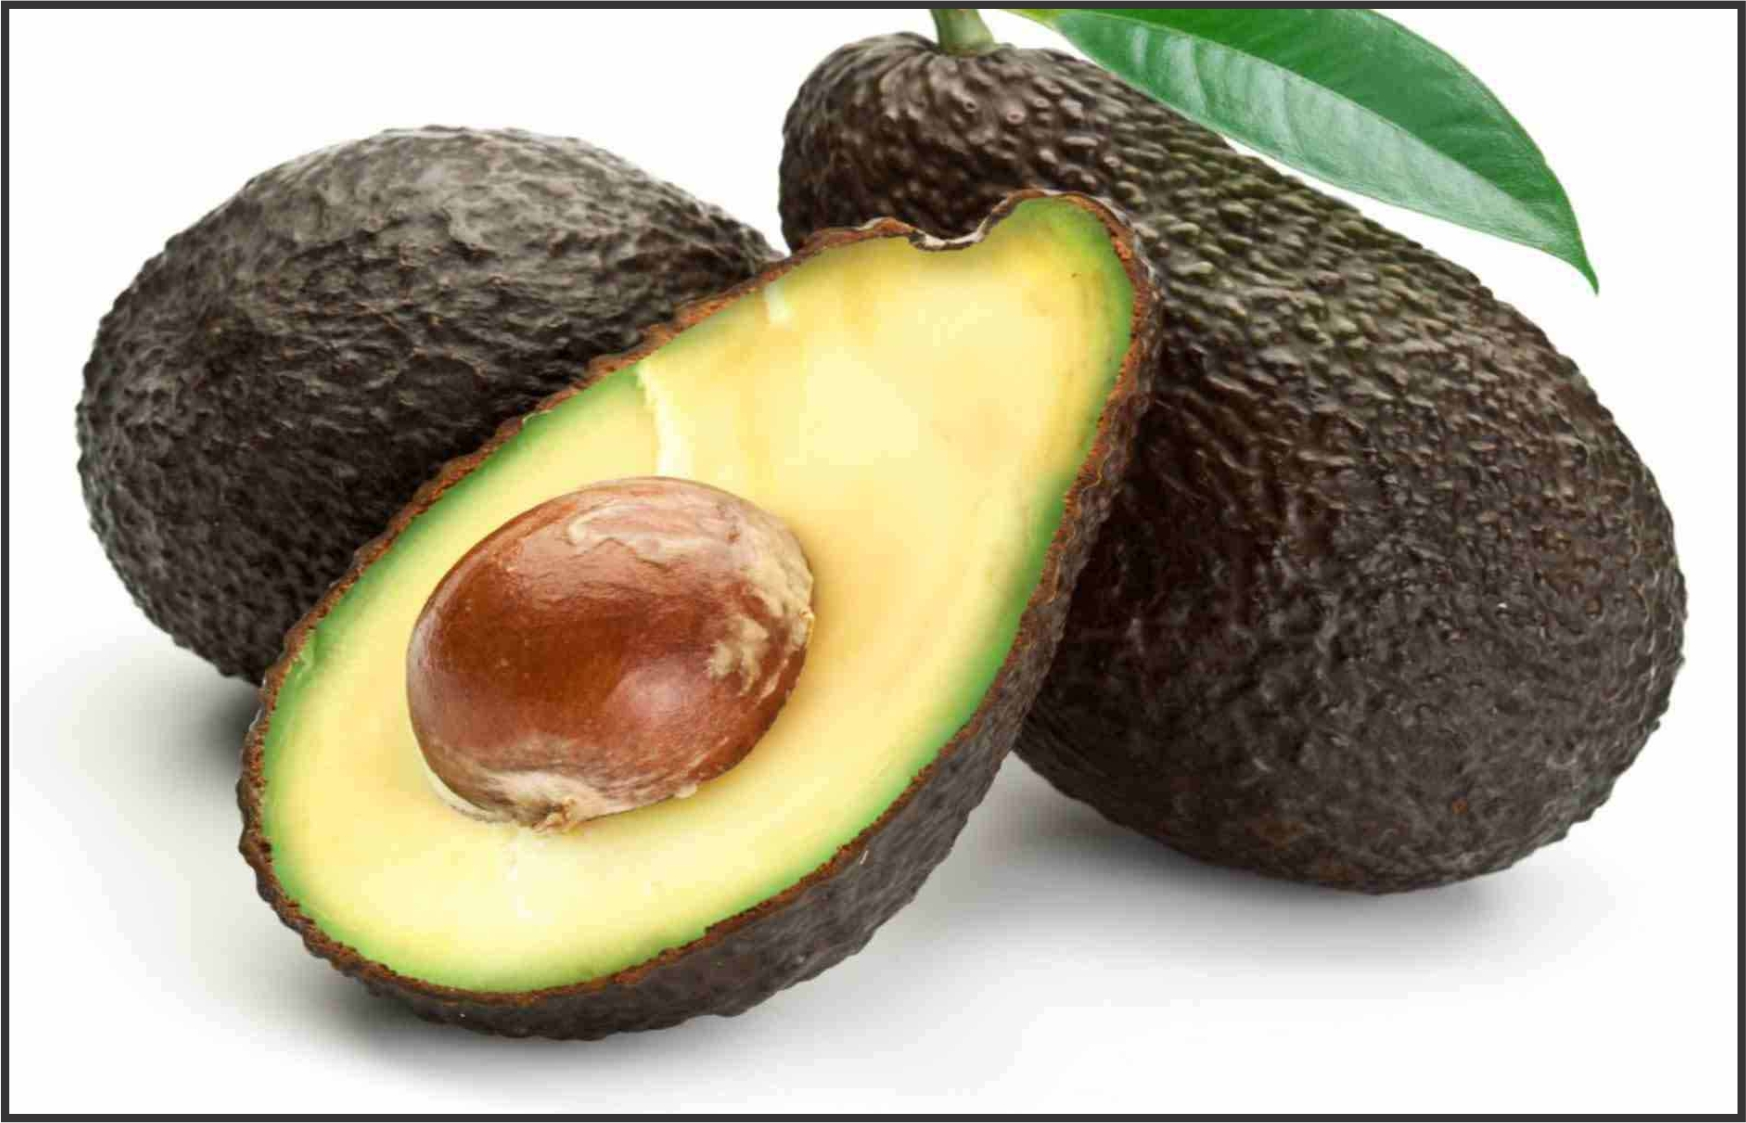 Israelis Train Palestinian Farmers to Grow Avocados